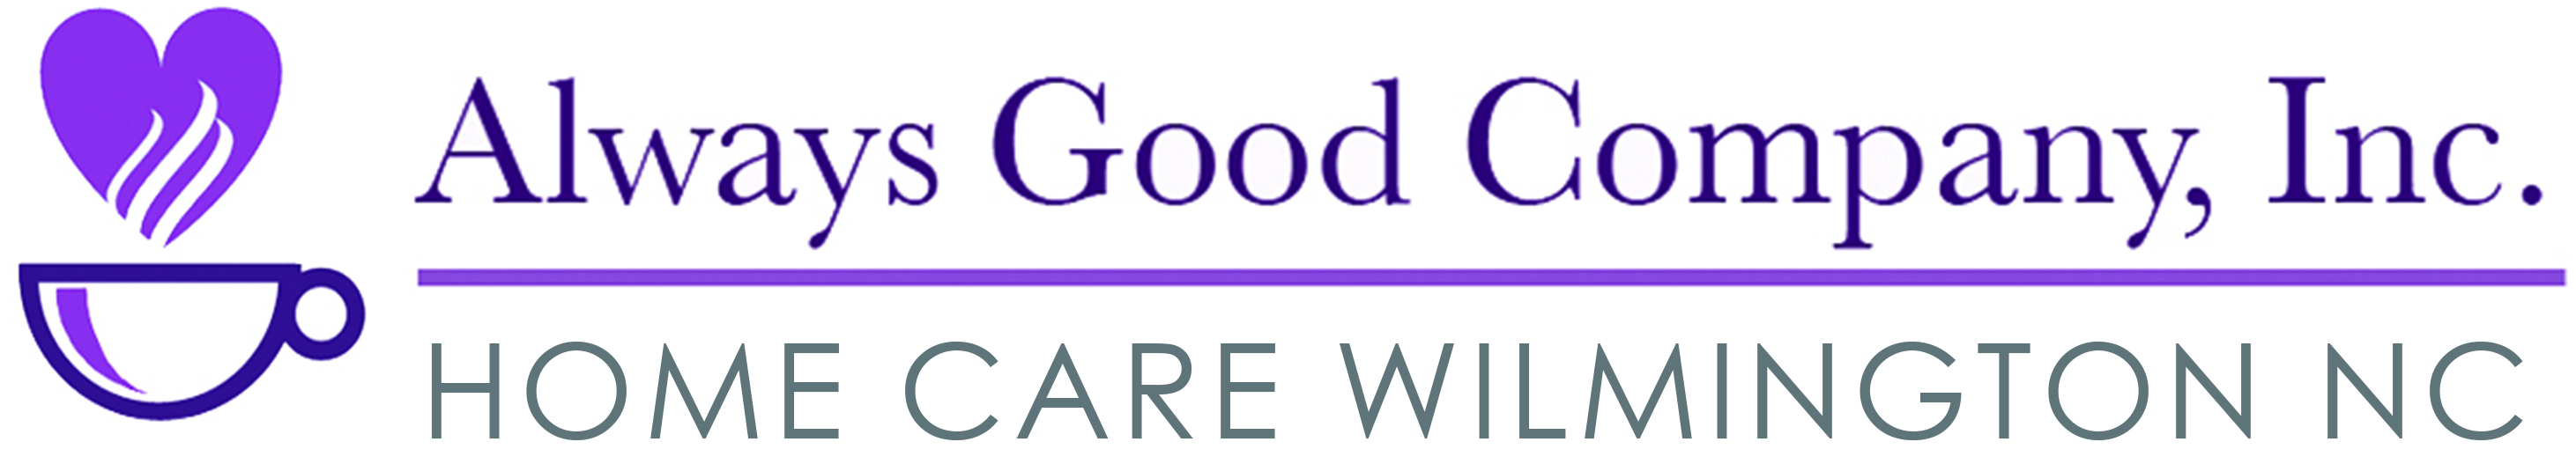 Always Good Company Home Care, Inc.